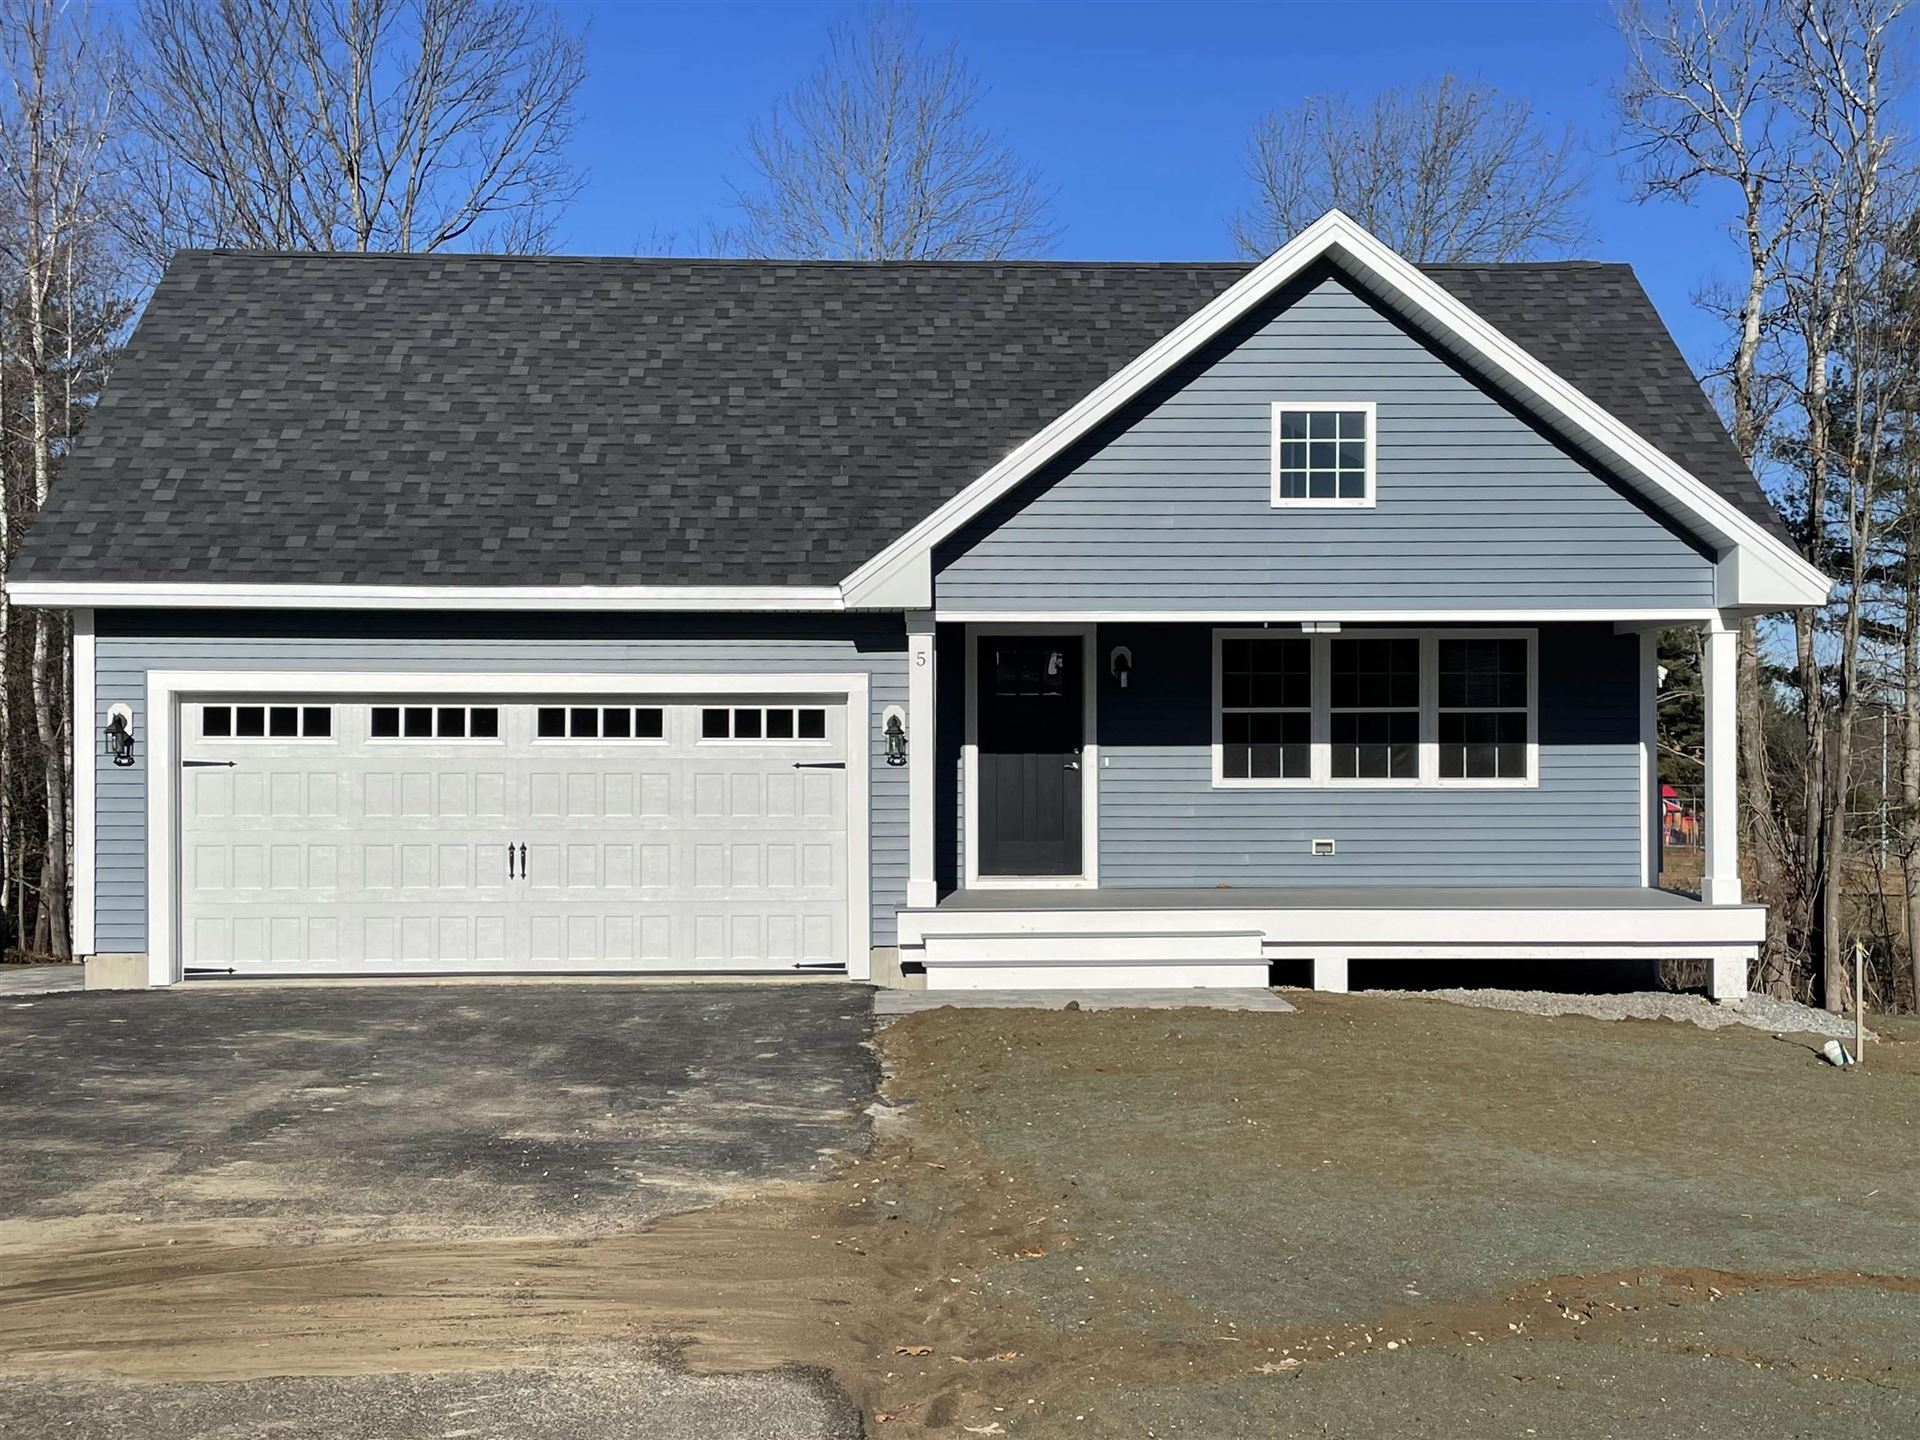 Lot 30 The Villages at Sunningdale Drive #30, Somersworth, NH 03878 - MLS#: 4838856